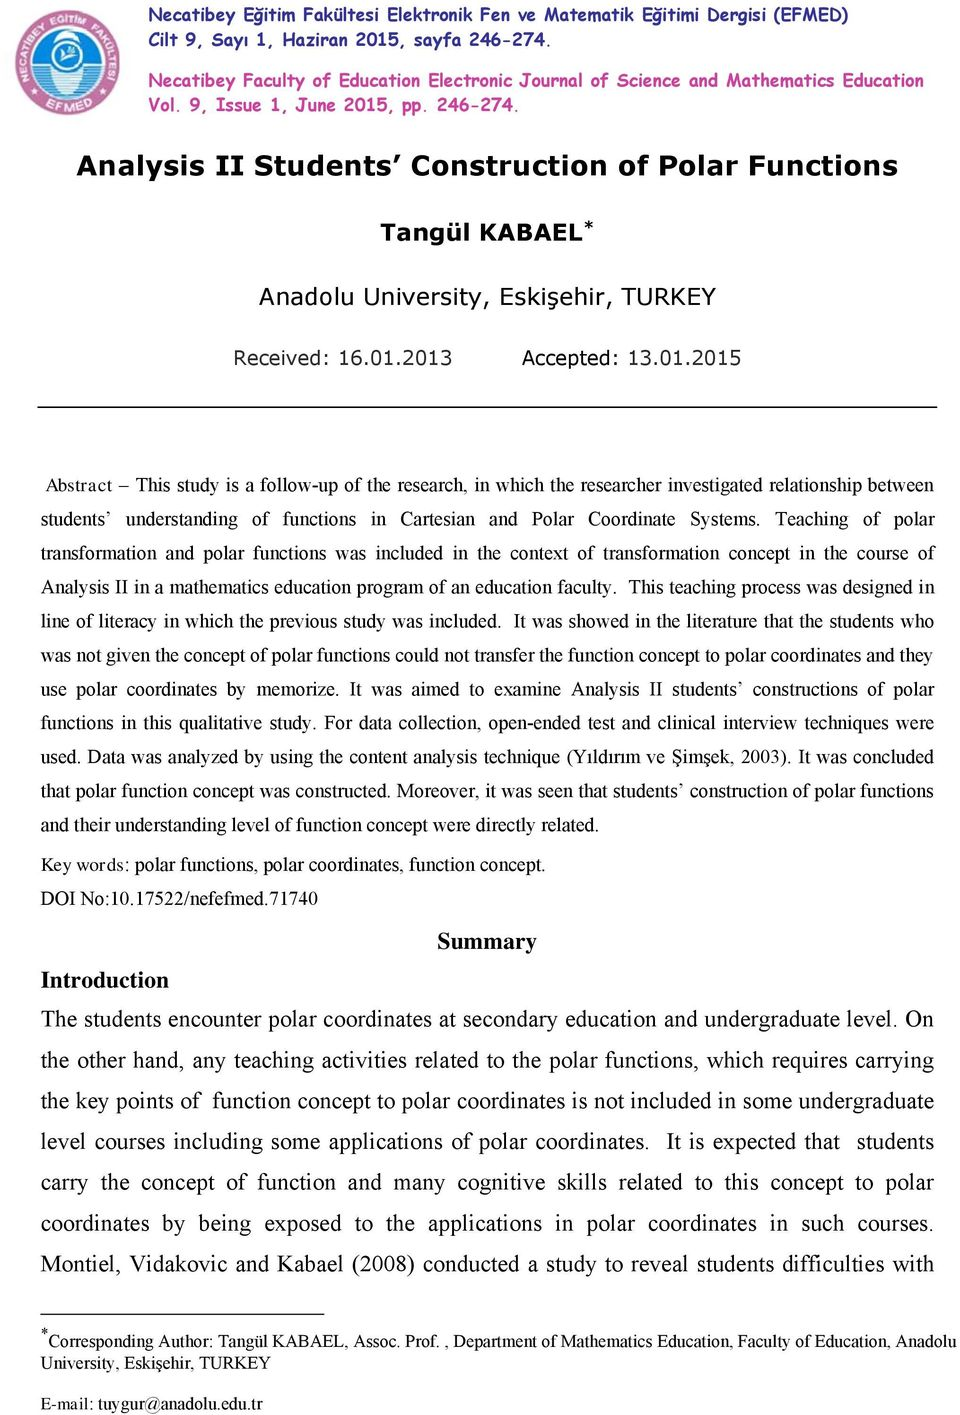 Analysis II Students Construction of Polar Functions Tangül KABAEL * Anadolu University, Eskişehir, TURKEY Received: 16.01.